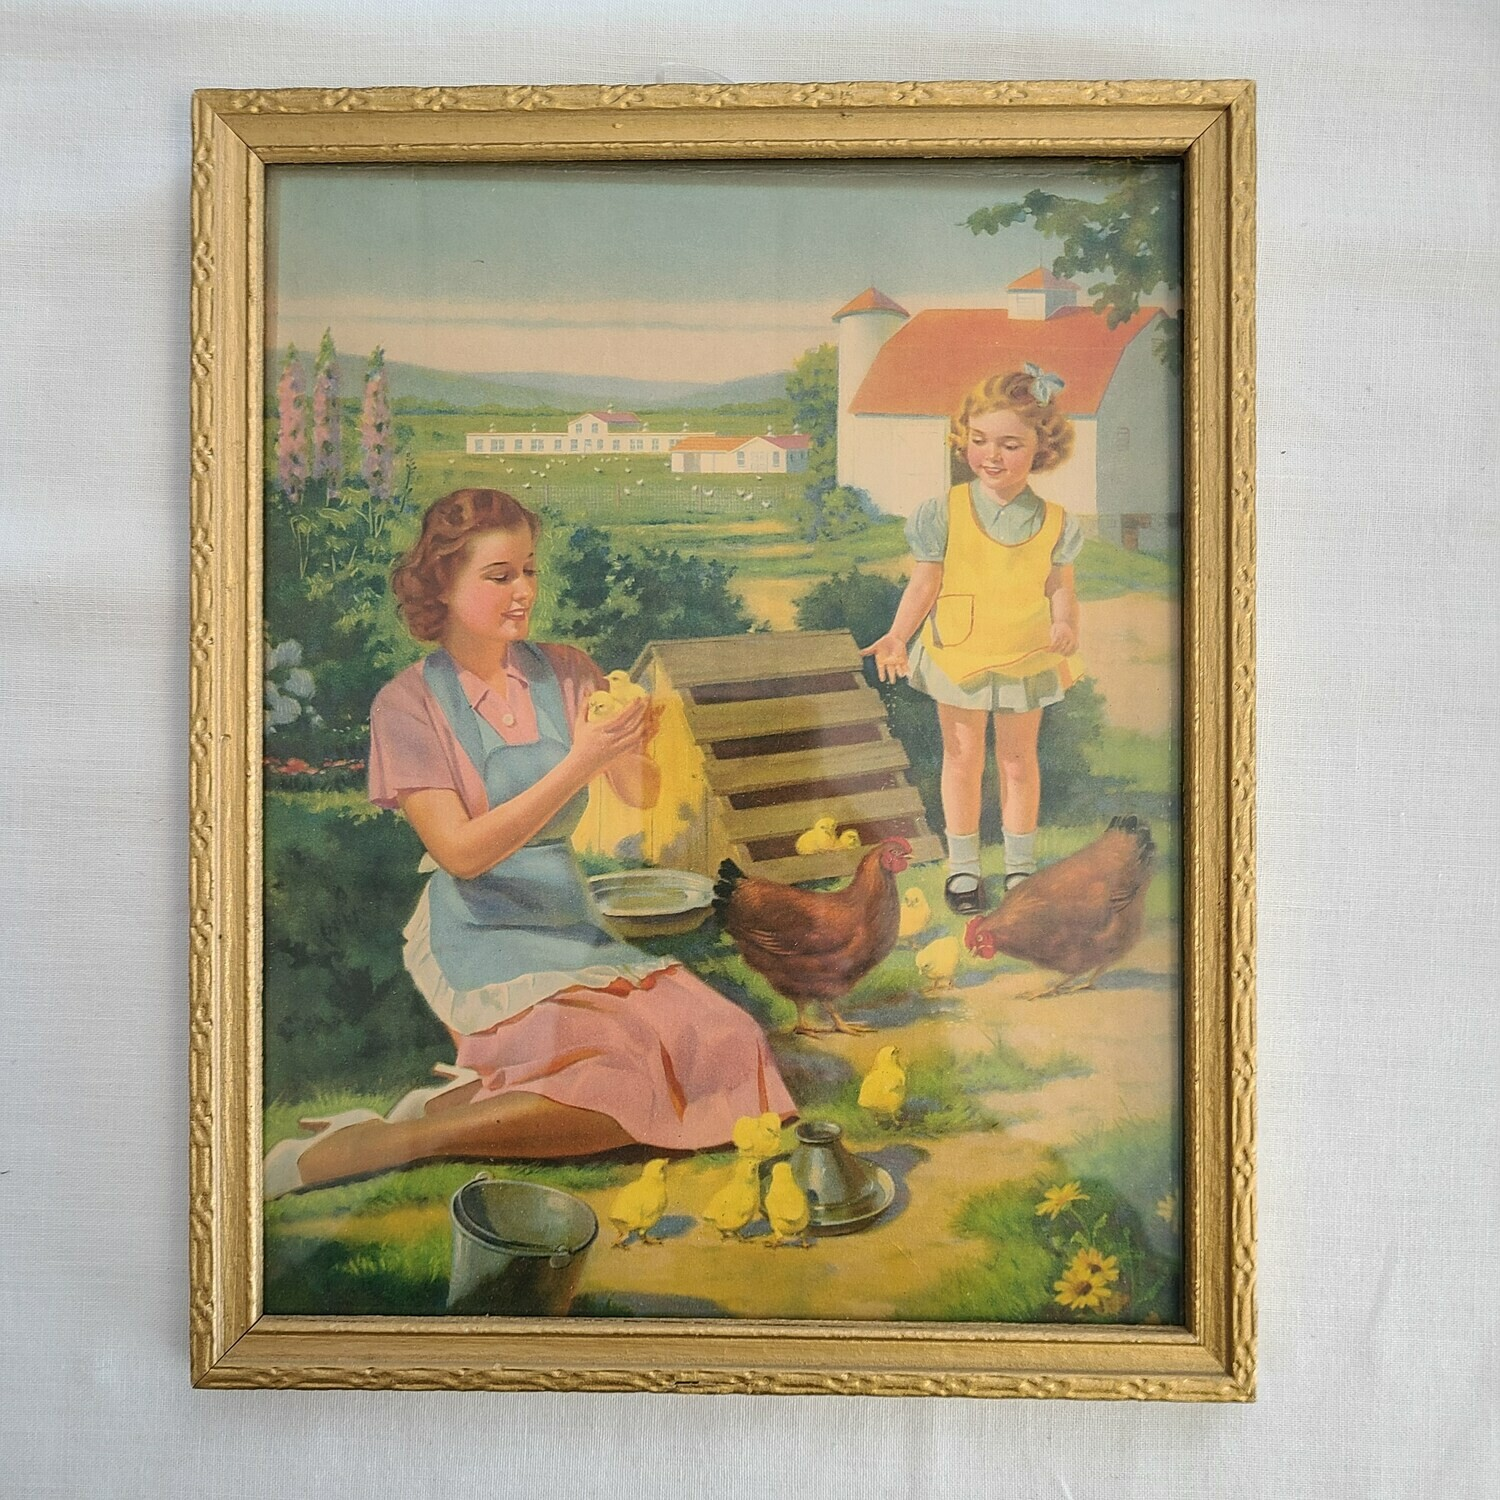 Late 1940s - Early 1950s Framed LithoGraph